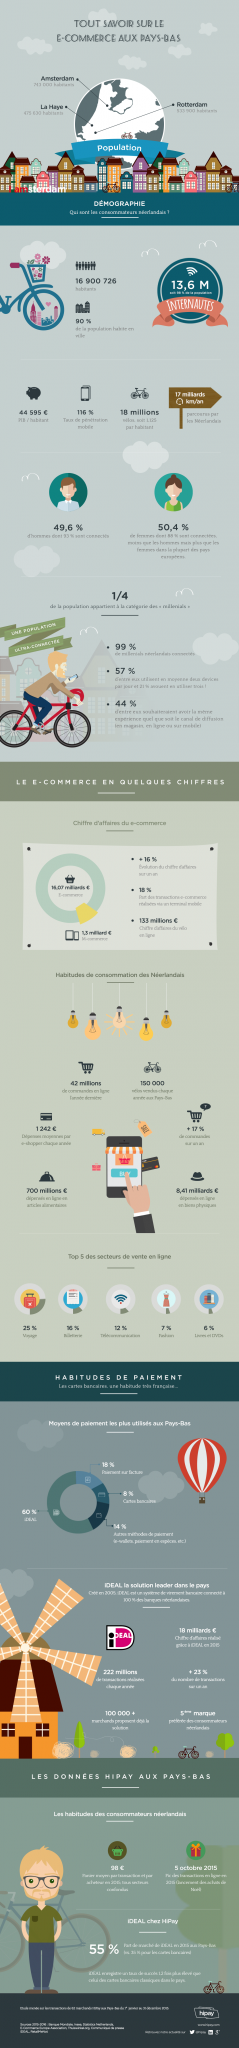 ecommerce_paysbas_infographie_fr